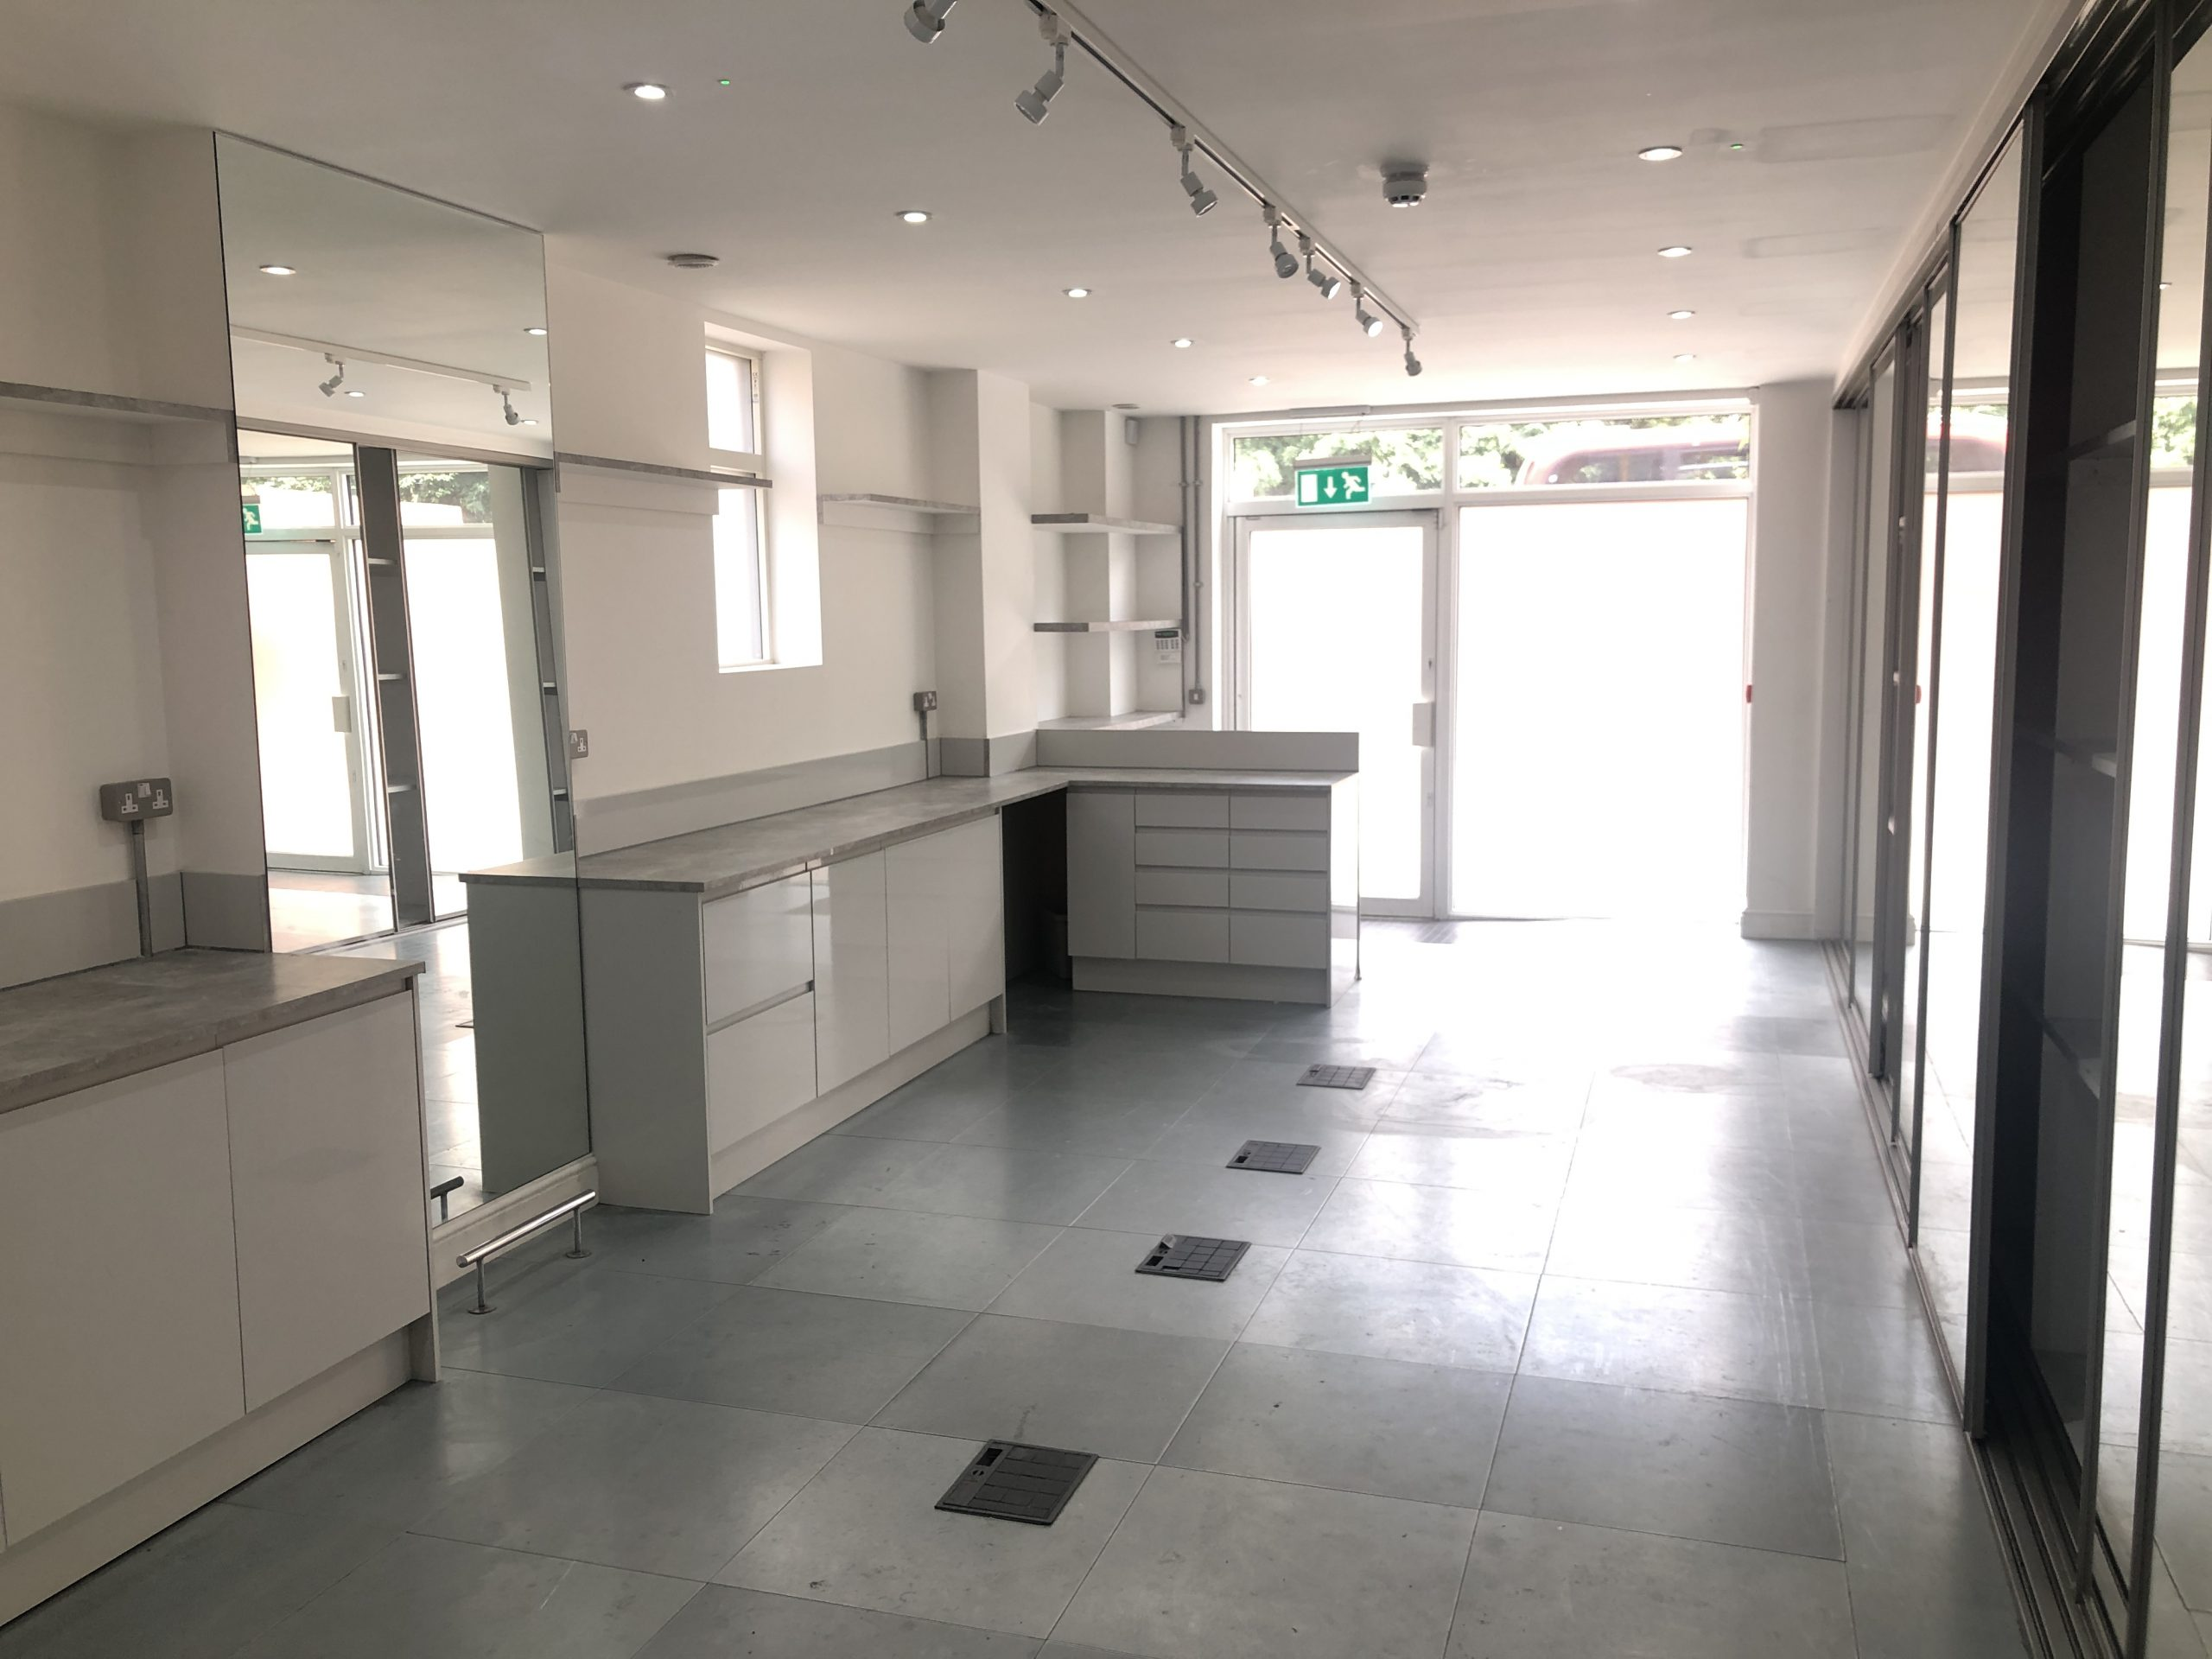 124-128 Brixton Hill, London, SW2 1RS